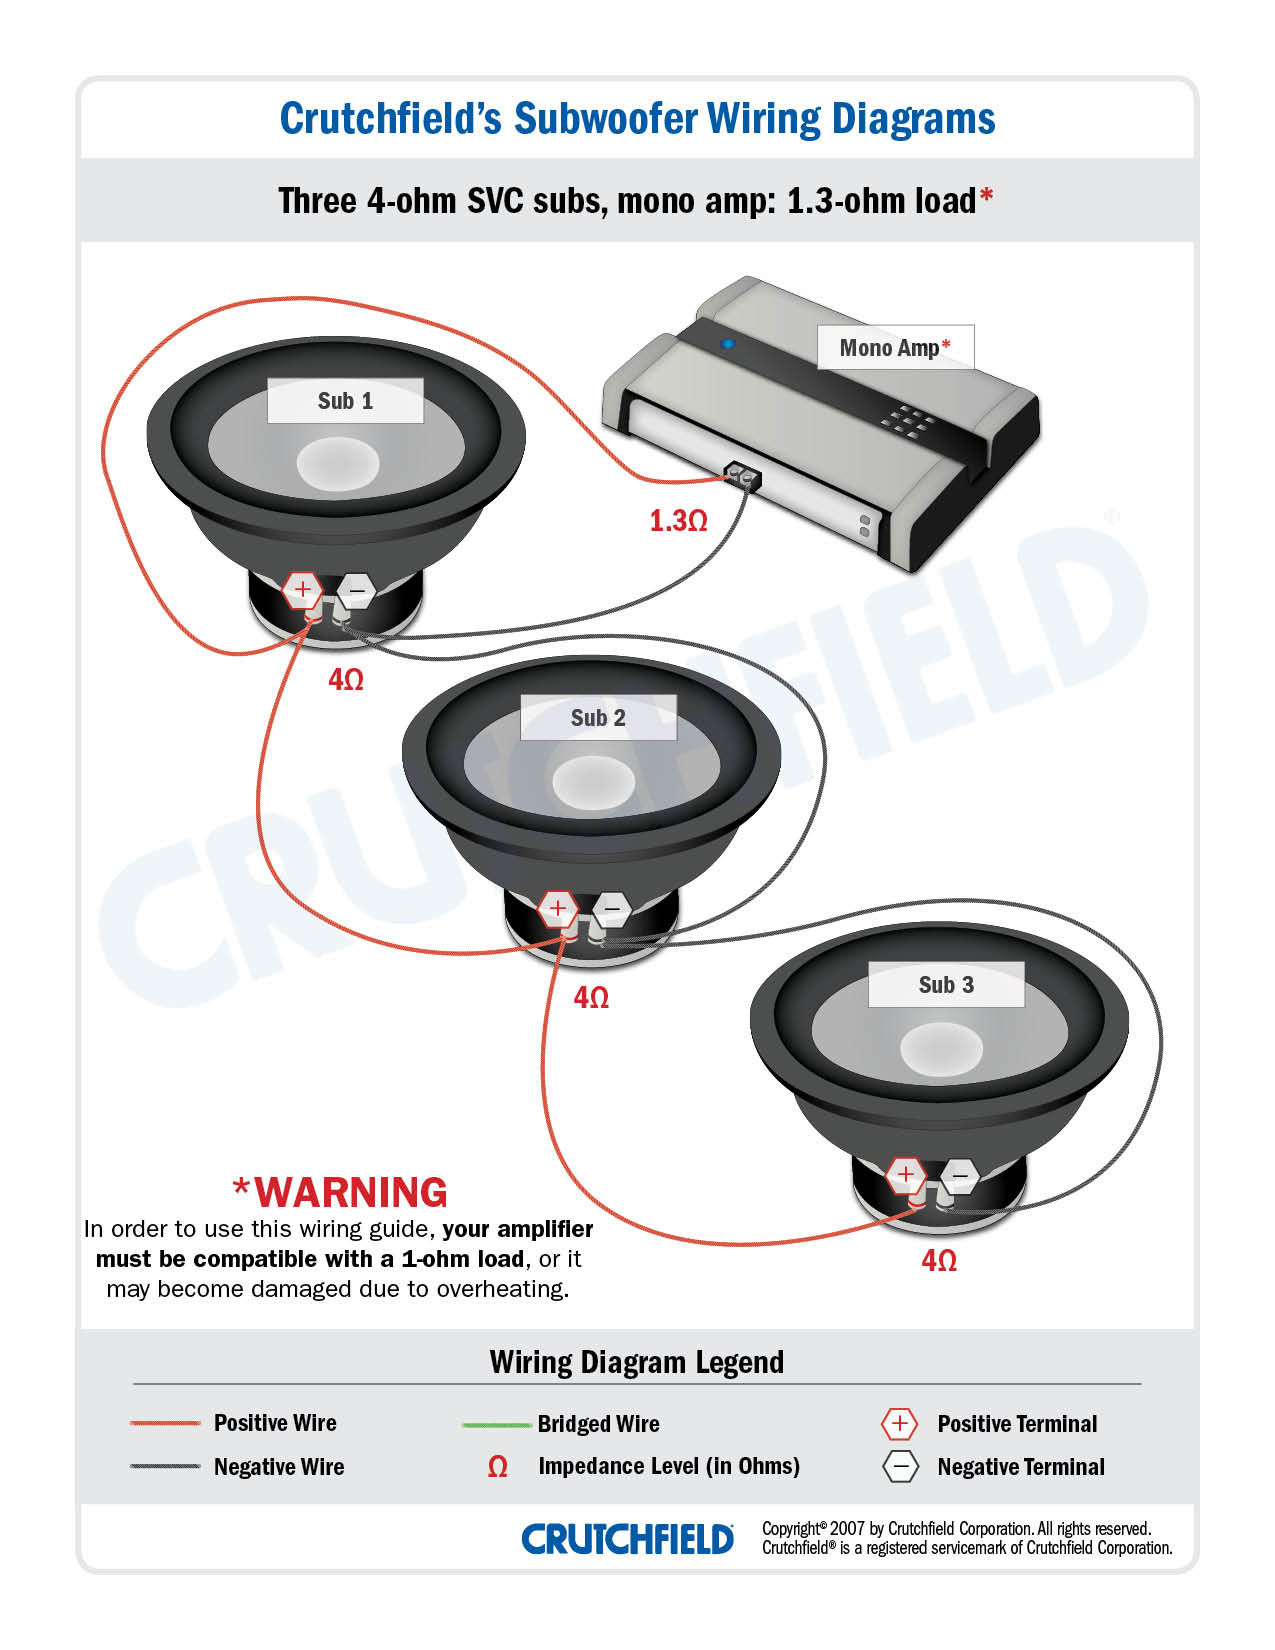 Incredible Subwoofer Wiring Diagrams How To Wire Your Subs Wiring 101 Photwellnesstrialsorg